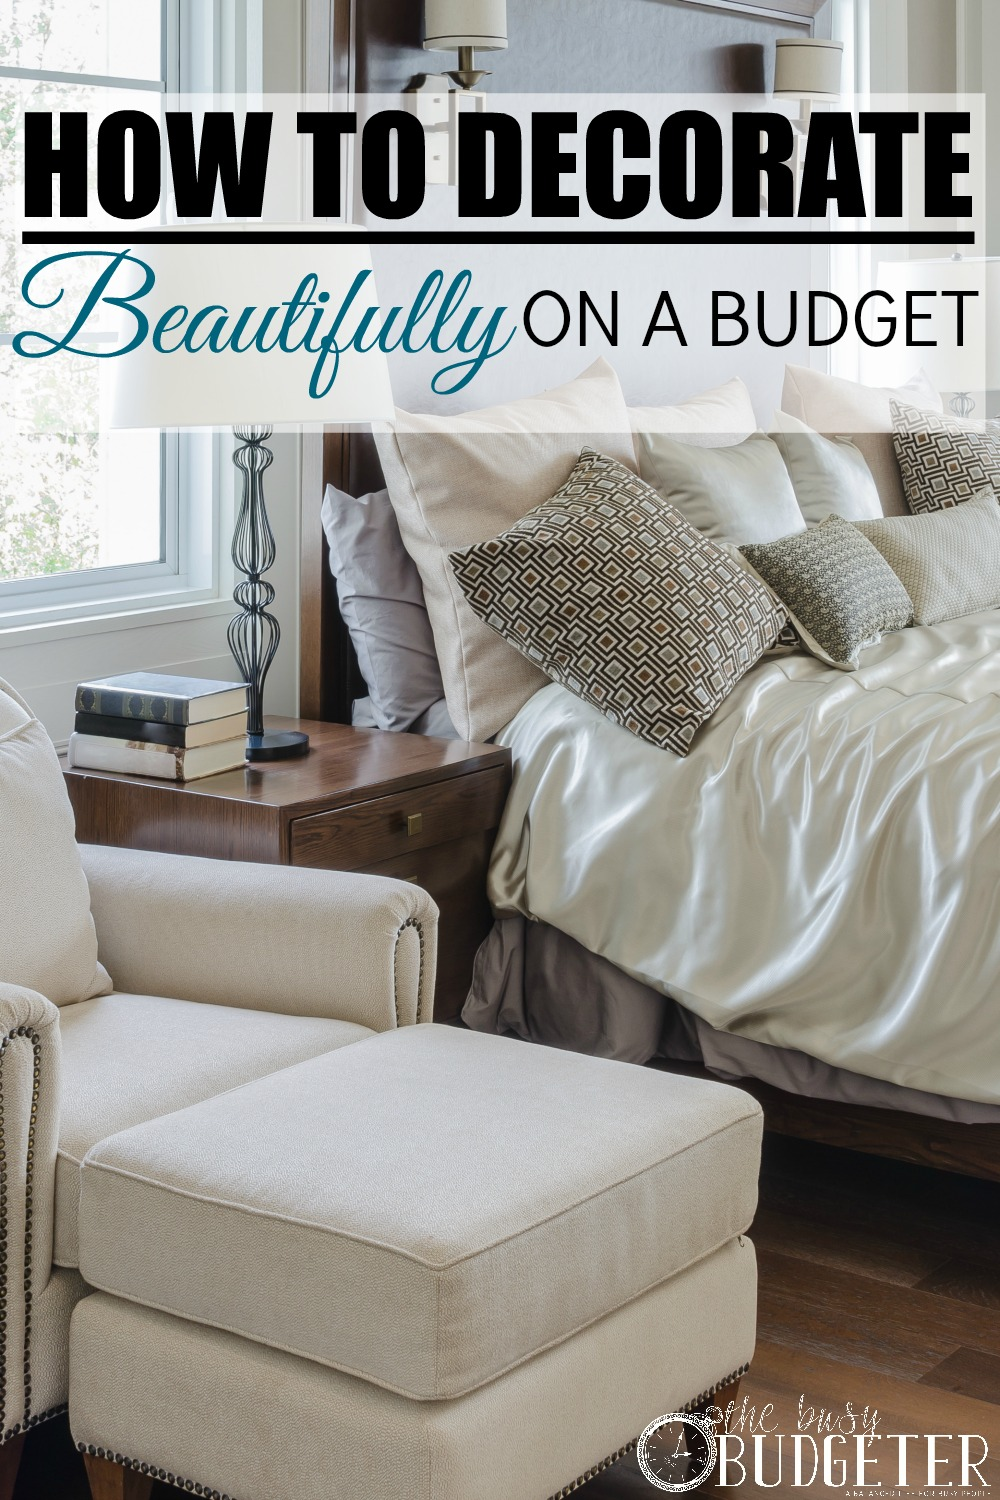 6 step system to decorate beautifully on a budget - How to decorate a house on a budget ...